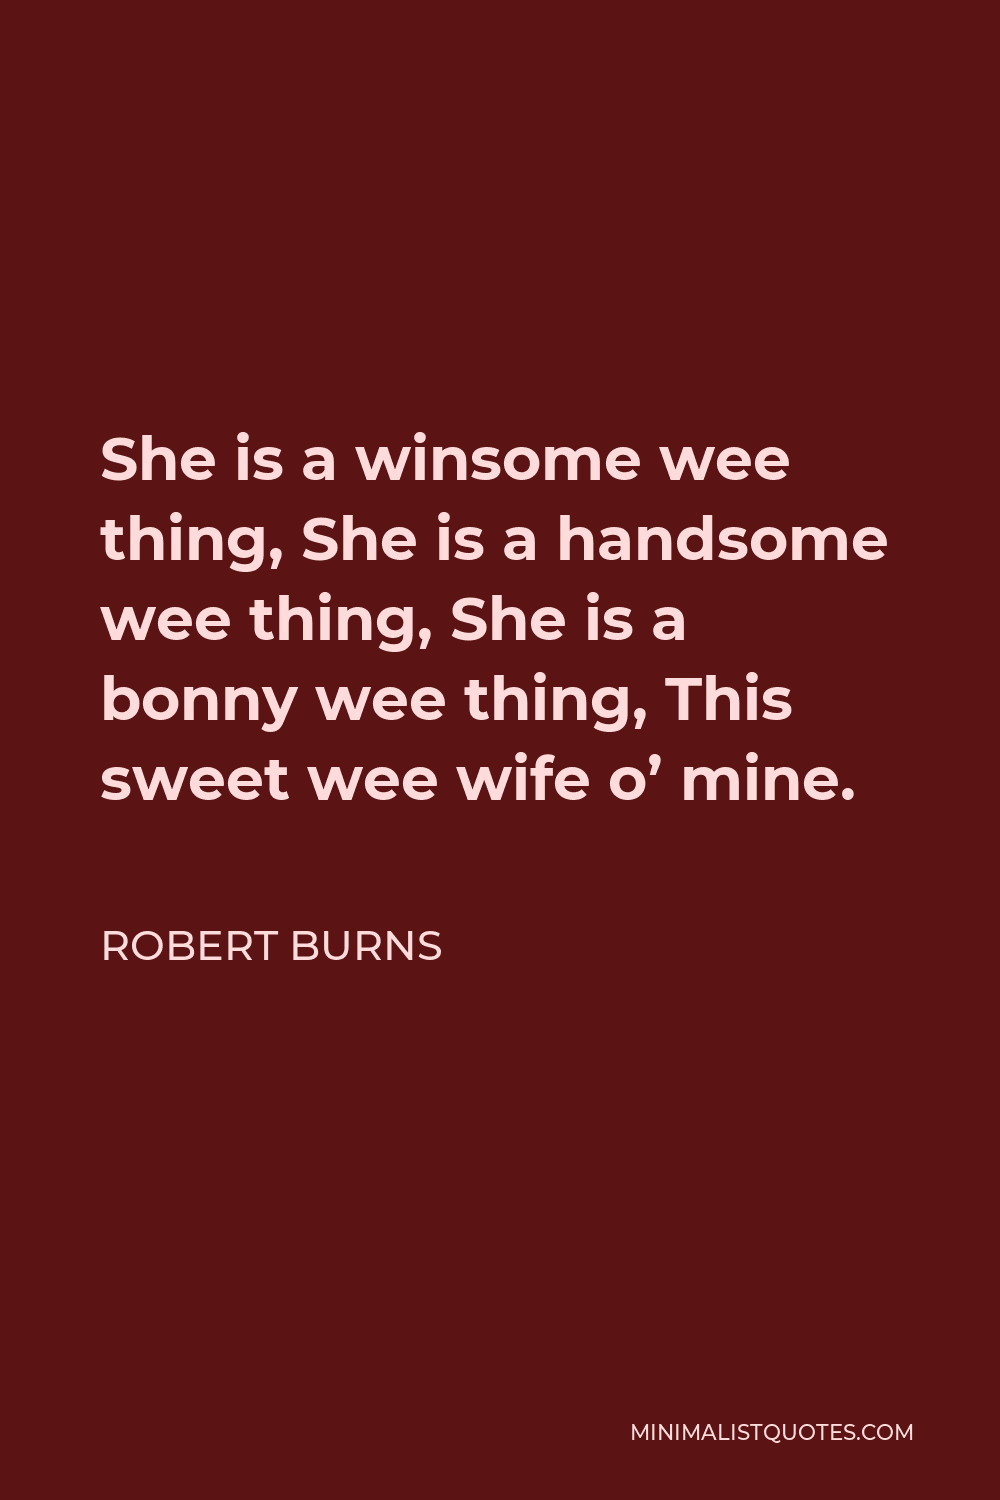 Robert Burns Quote - She is a winsome wee thing, She is a handsome wee thing, She is a bonny wee thing, This sweet wee wife o' mine.